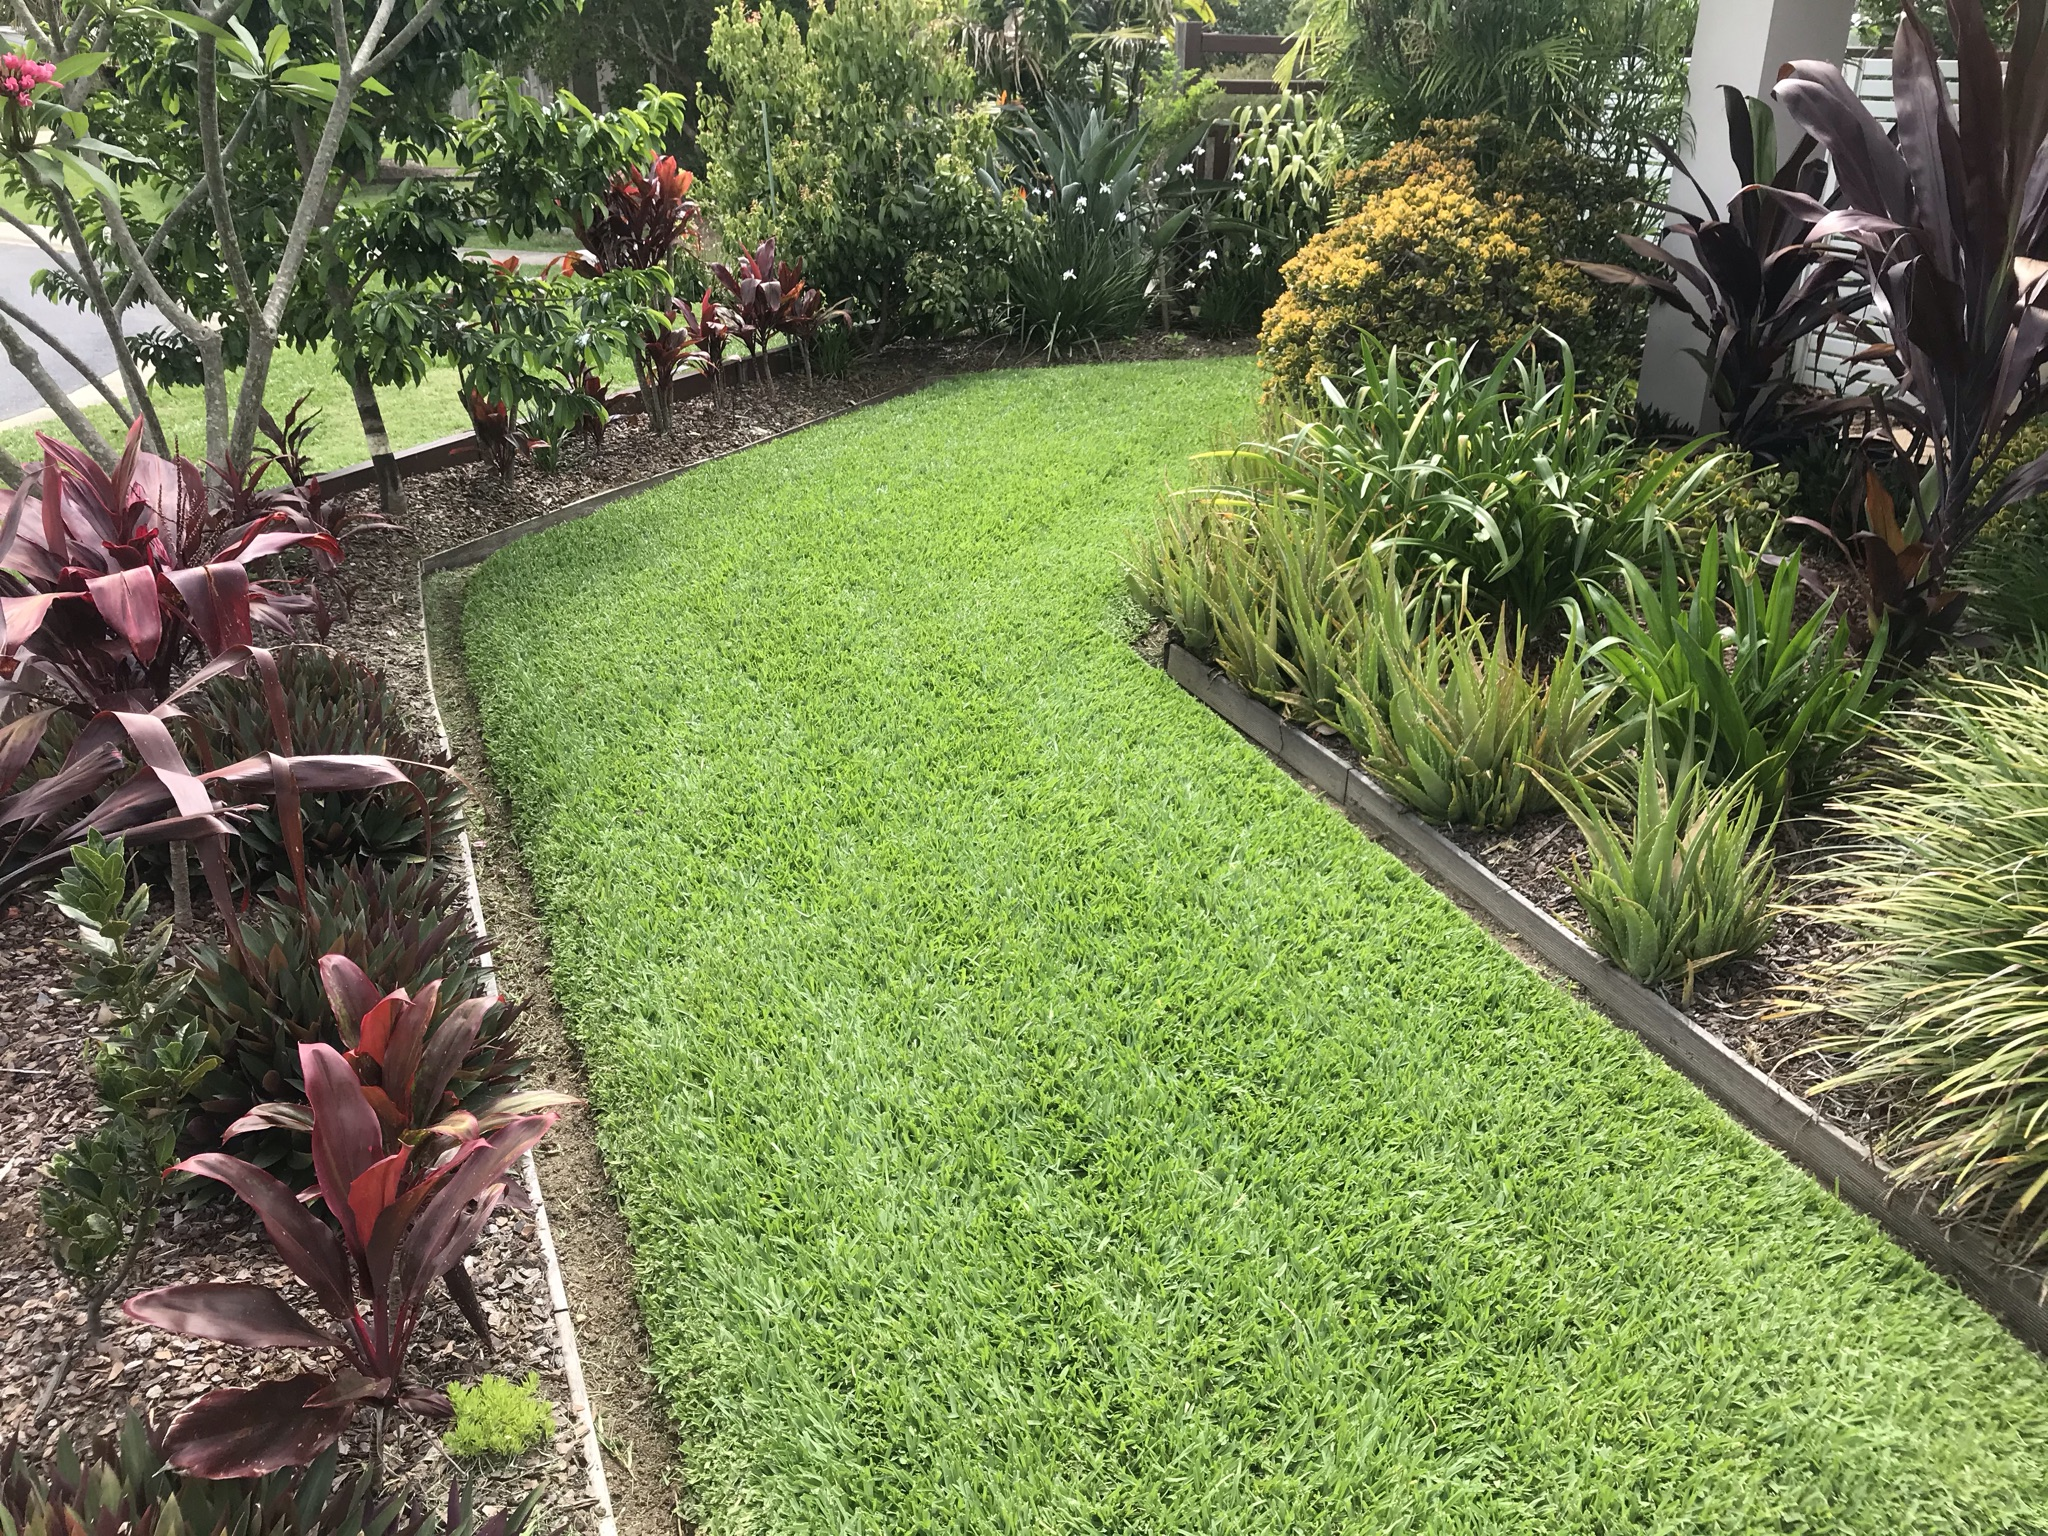 Garden Green grass | Best Lawn for Brisbane | Brisbane's Best Lawns – Blog Featured Image